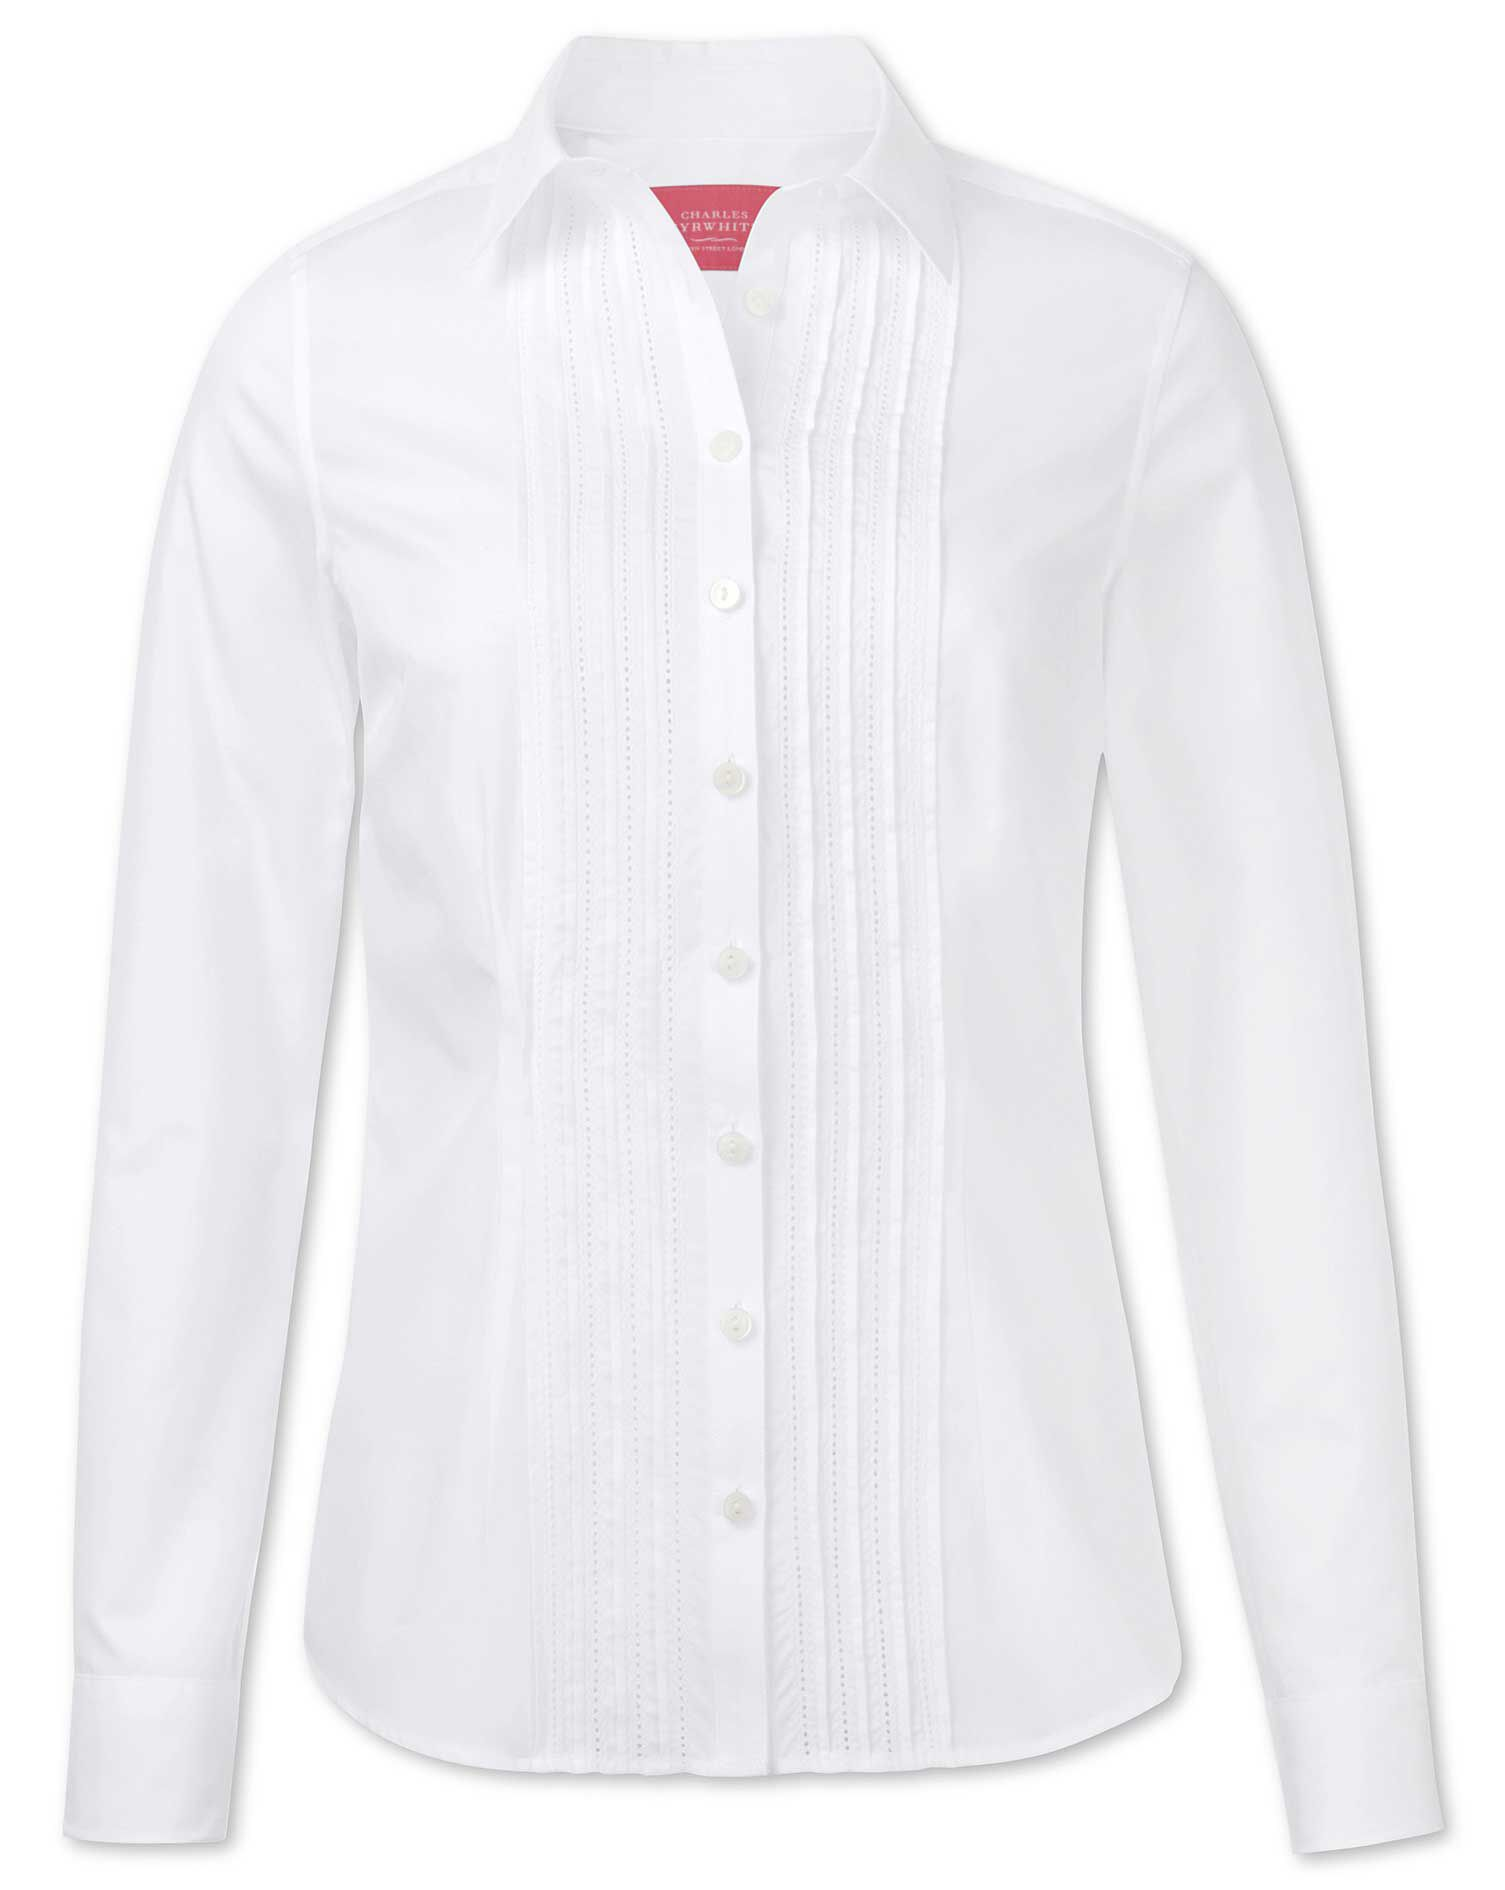 Women's Semi-Fitted Pintuck White Essential Cotton Shirt Size 20 by Charles Tyrwhitt